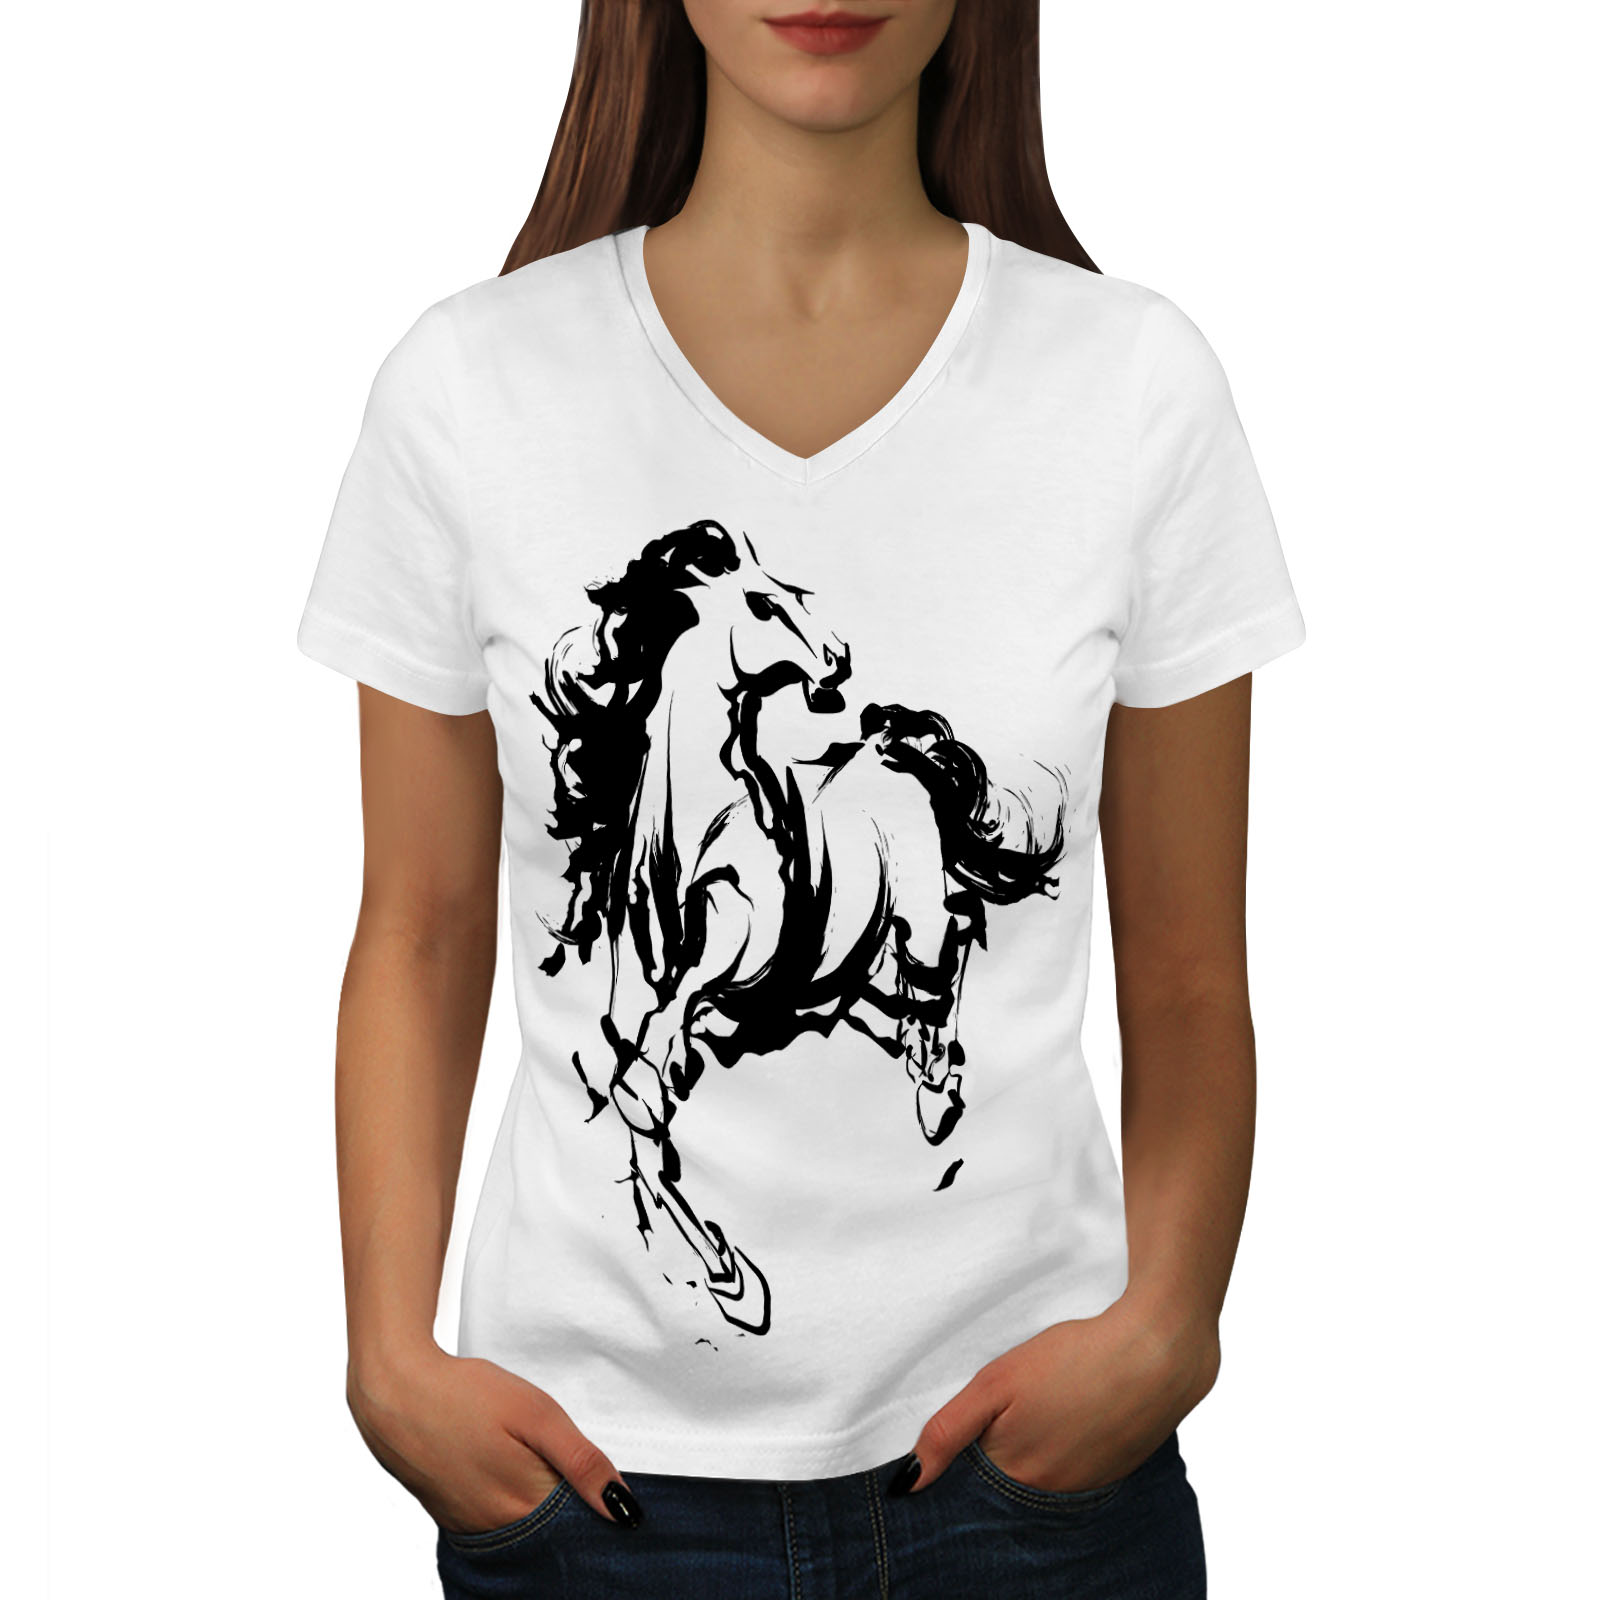 Wellcoda Horse Cool Printed Womens V-Neck T-shirt Wild Graphic Design Tee